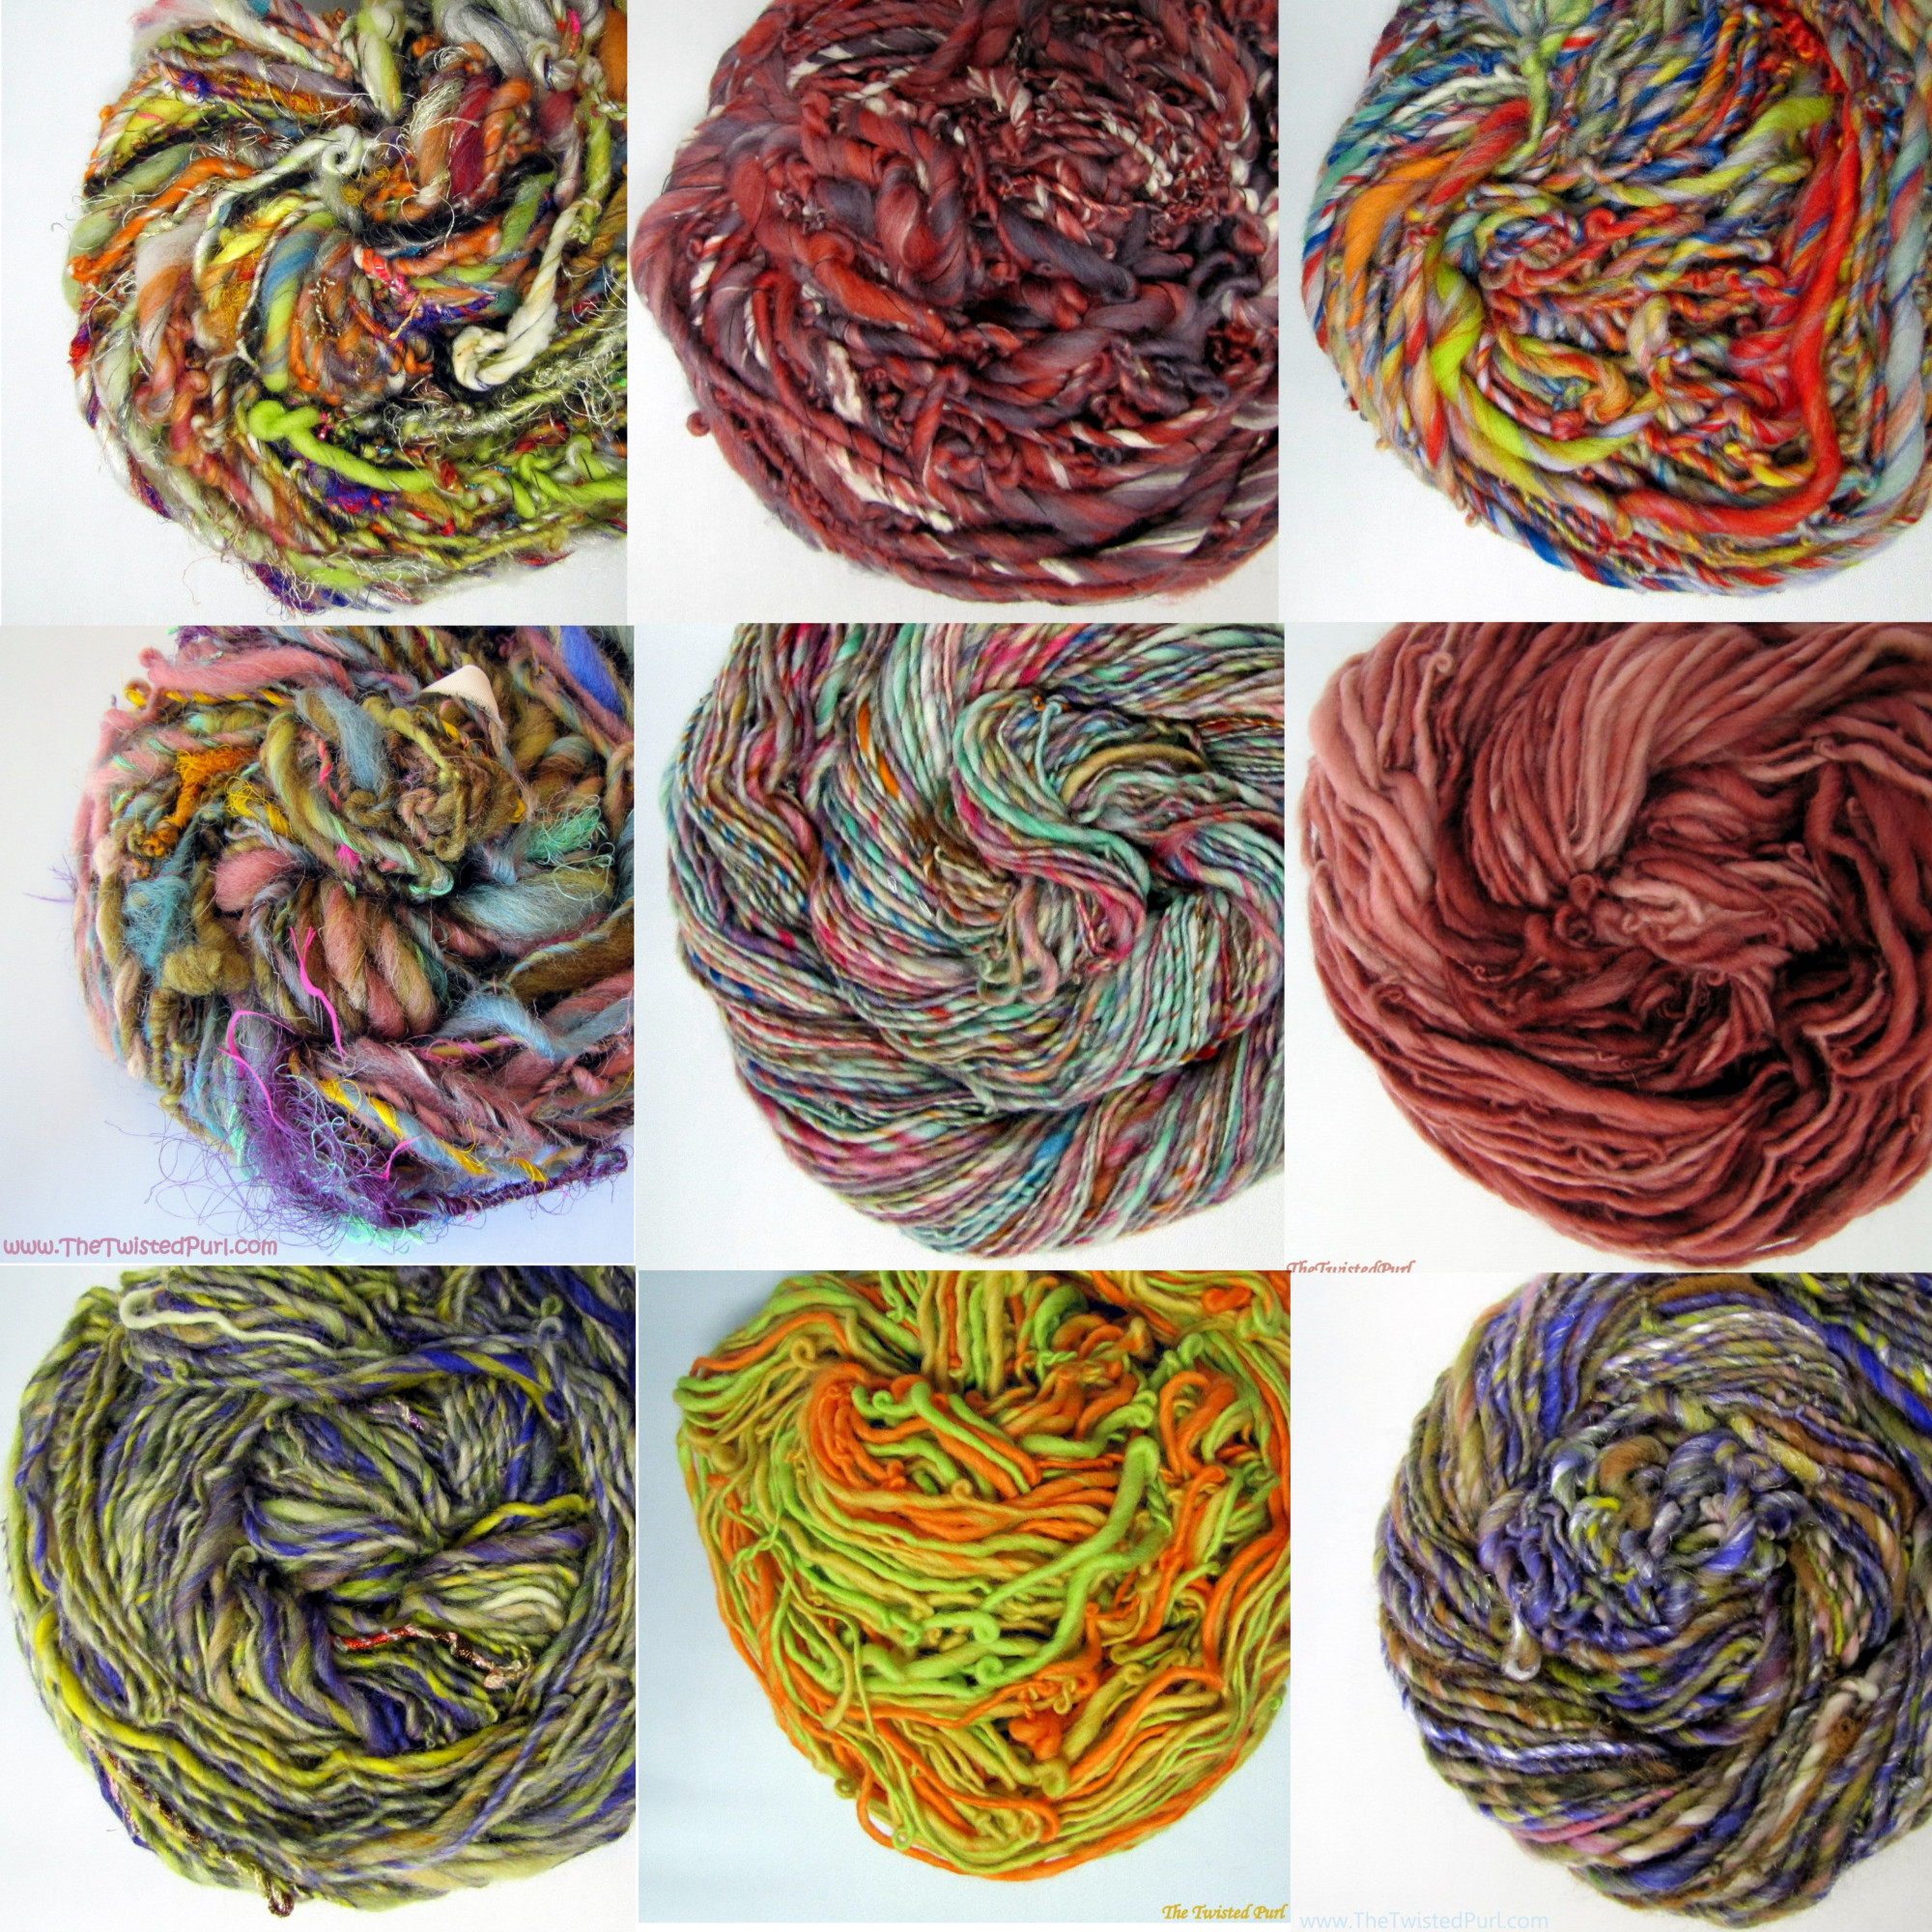 Crocheting Yarn For Sale : Preview of Yarn for Sale at Knit & Crochet Show in Minneapolis ...